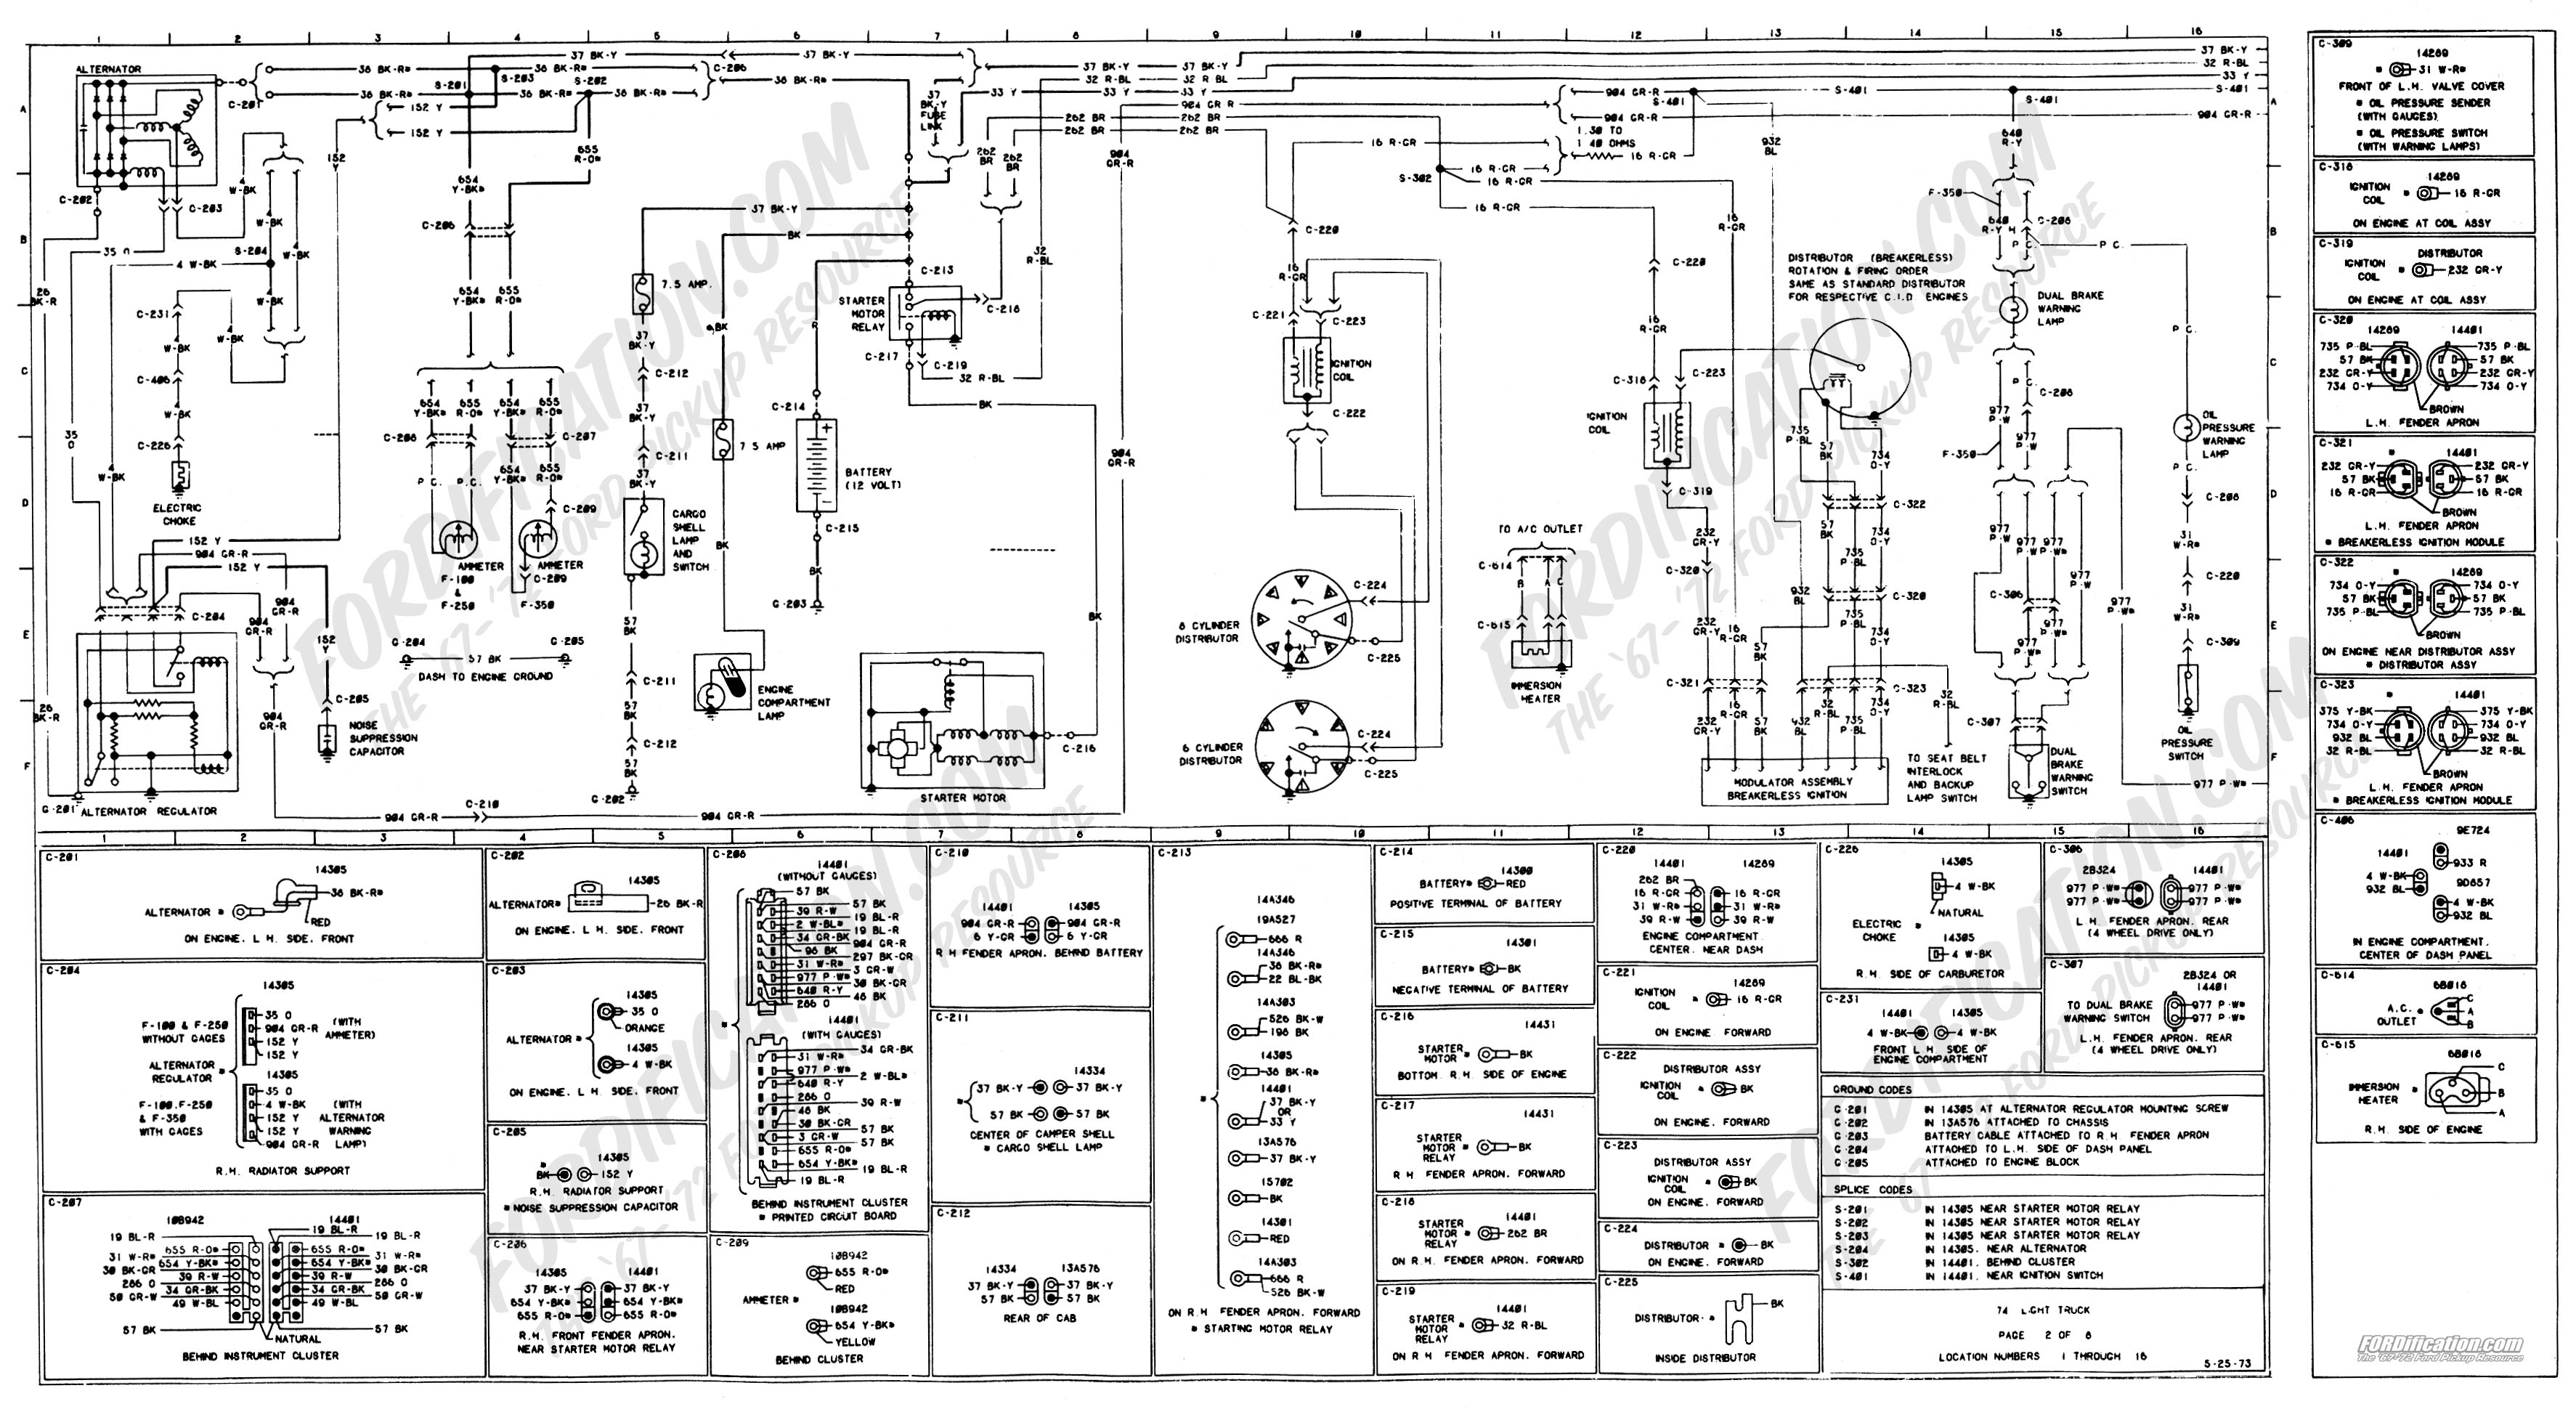 wiring_74master_2of8?resize=665%2C367 diagrams 27661688 sterling truck wiring diagrams 2001 sterling sterling dump truck wiring diagrams at arjmand.co